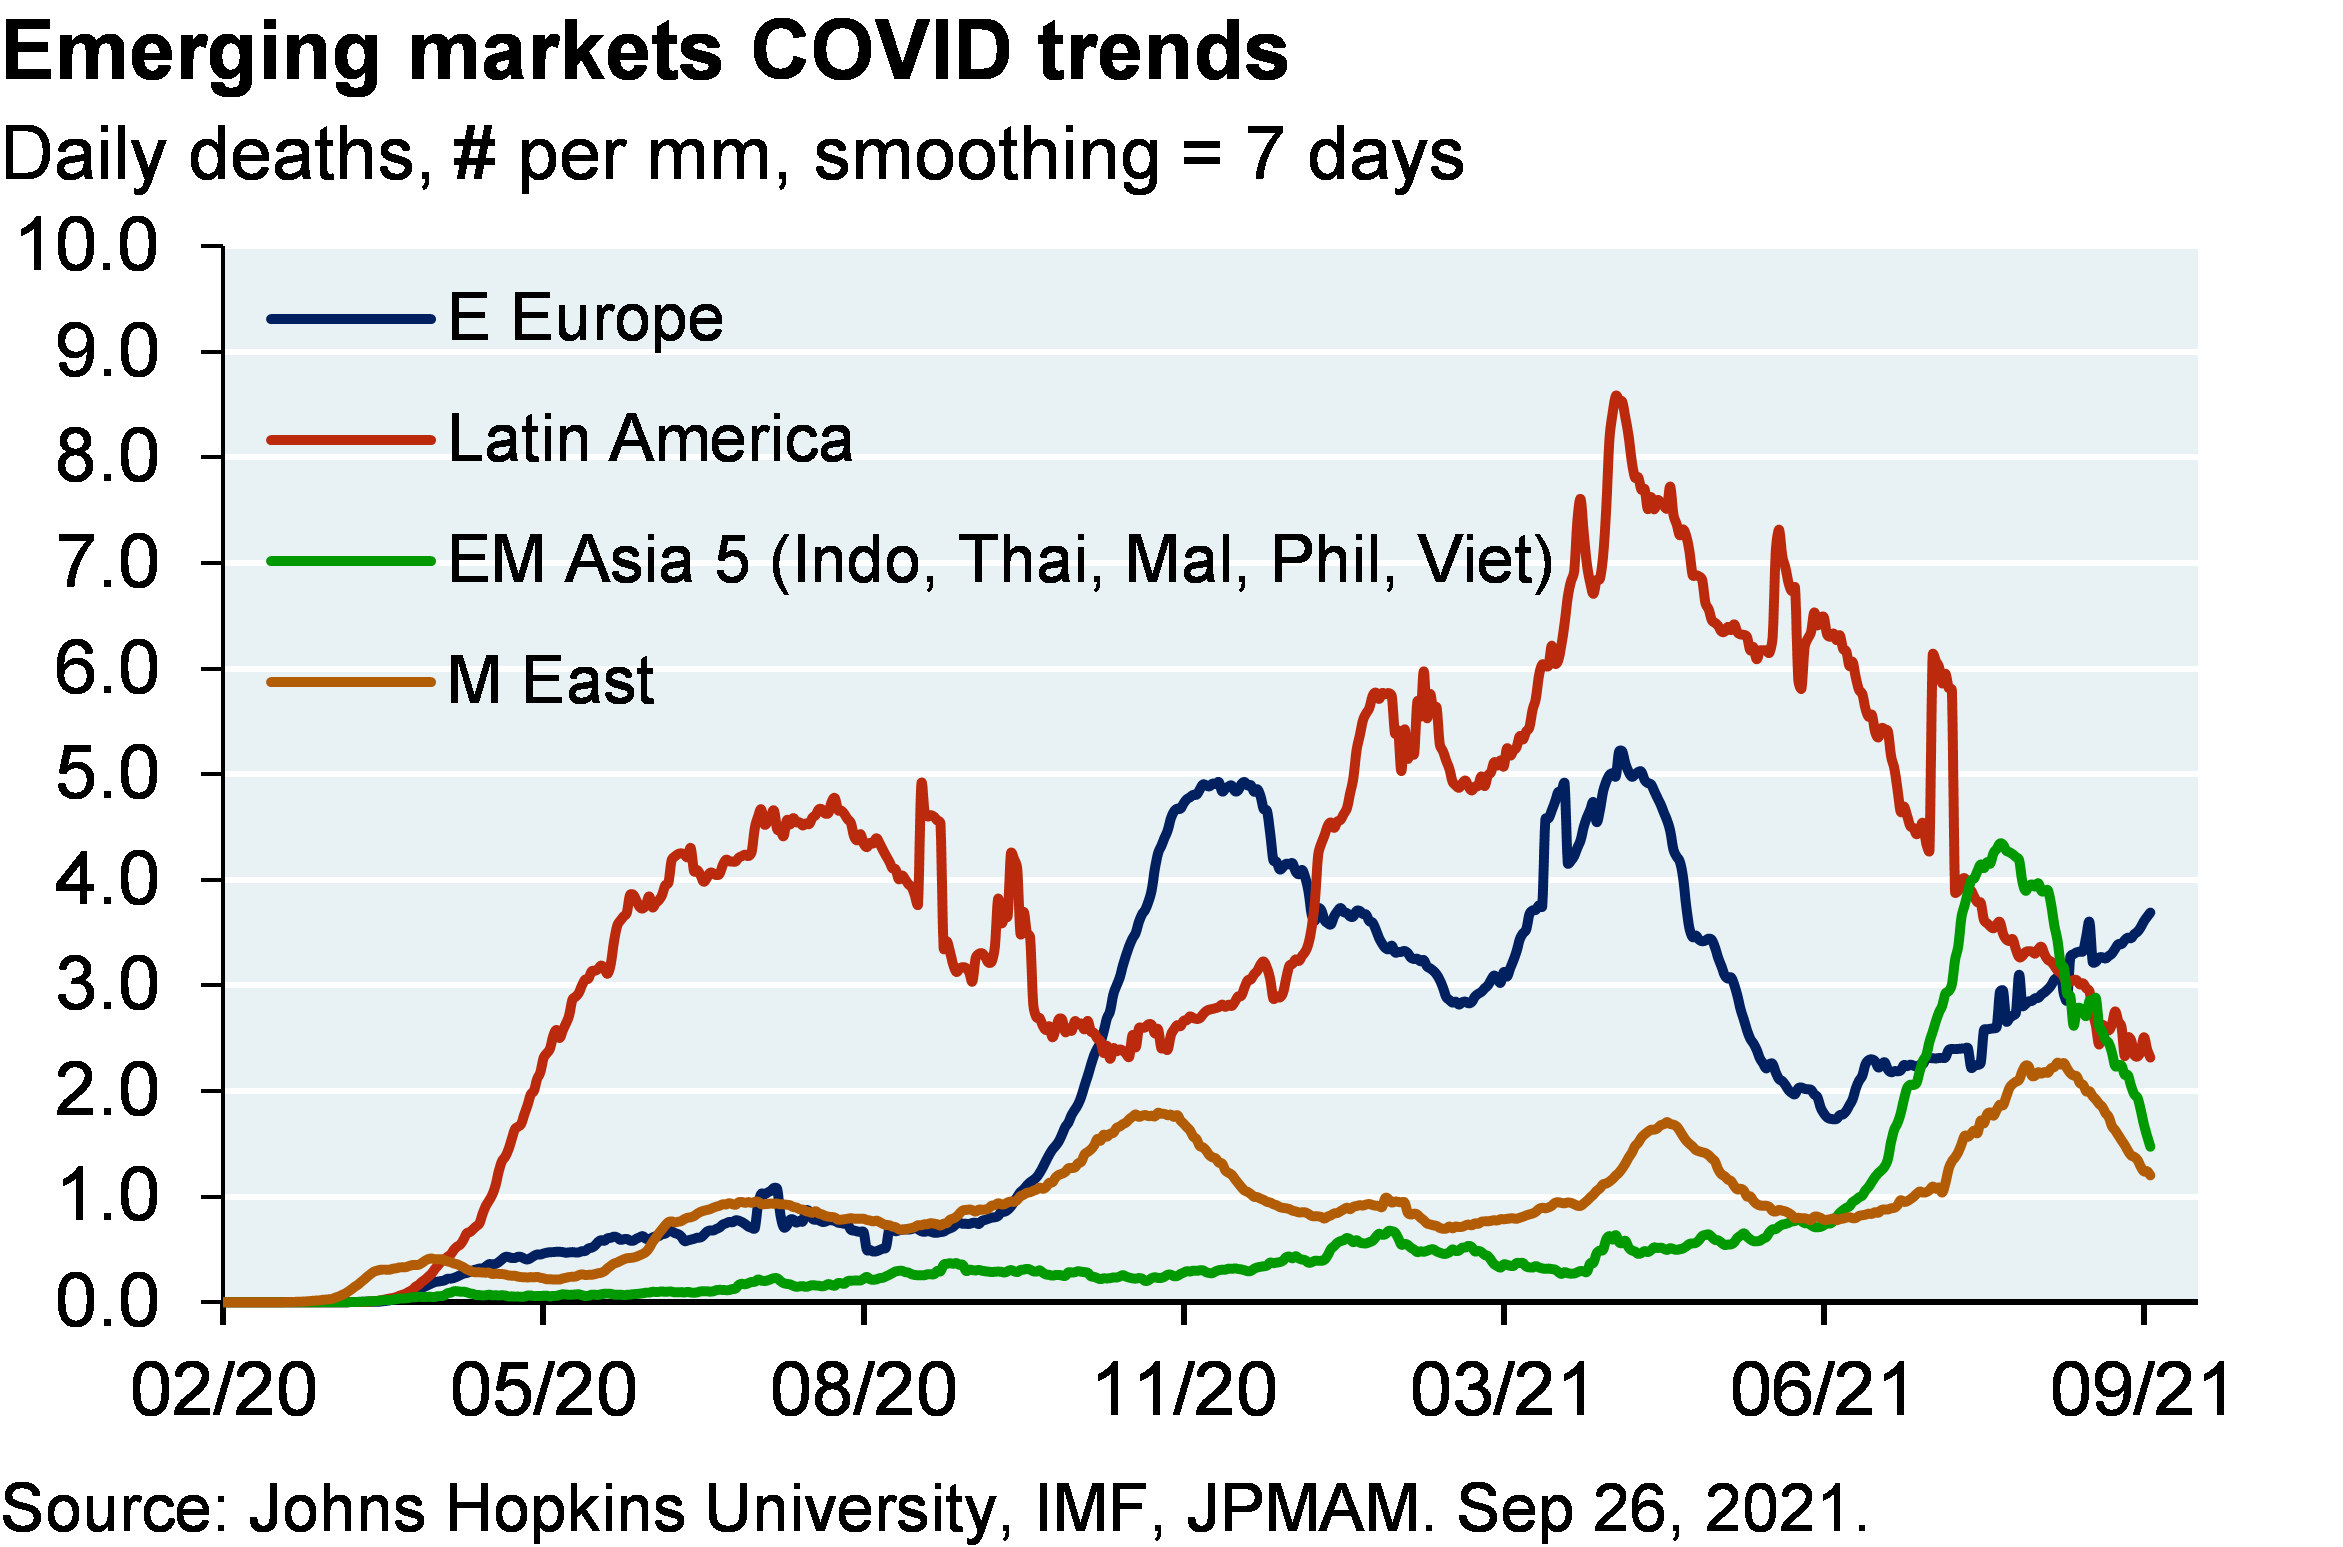 Line chart shows daily COVID-19 deaths per million people for emerging market countries (Latin America, Eastern Europe, EM Asia and the Middle East). In the developing world, infections and mortality are declining.  This is the result of exhaustion of Lambda and Gamma variants in Latin America and the decline in the Delta variant in Asia (note that mortality is rising in Eastern Europe again).